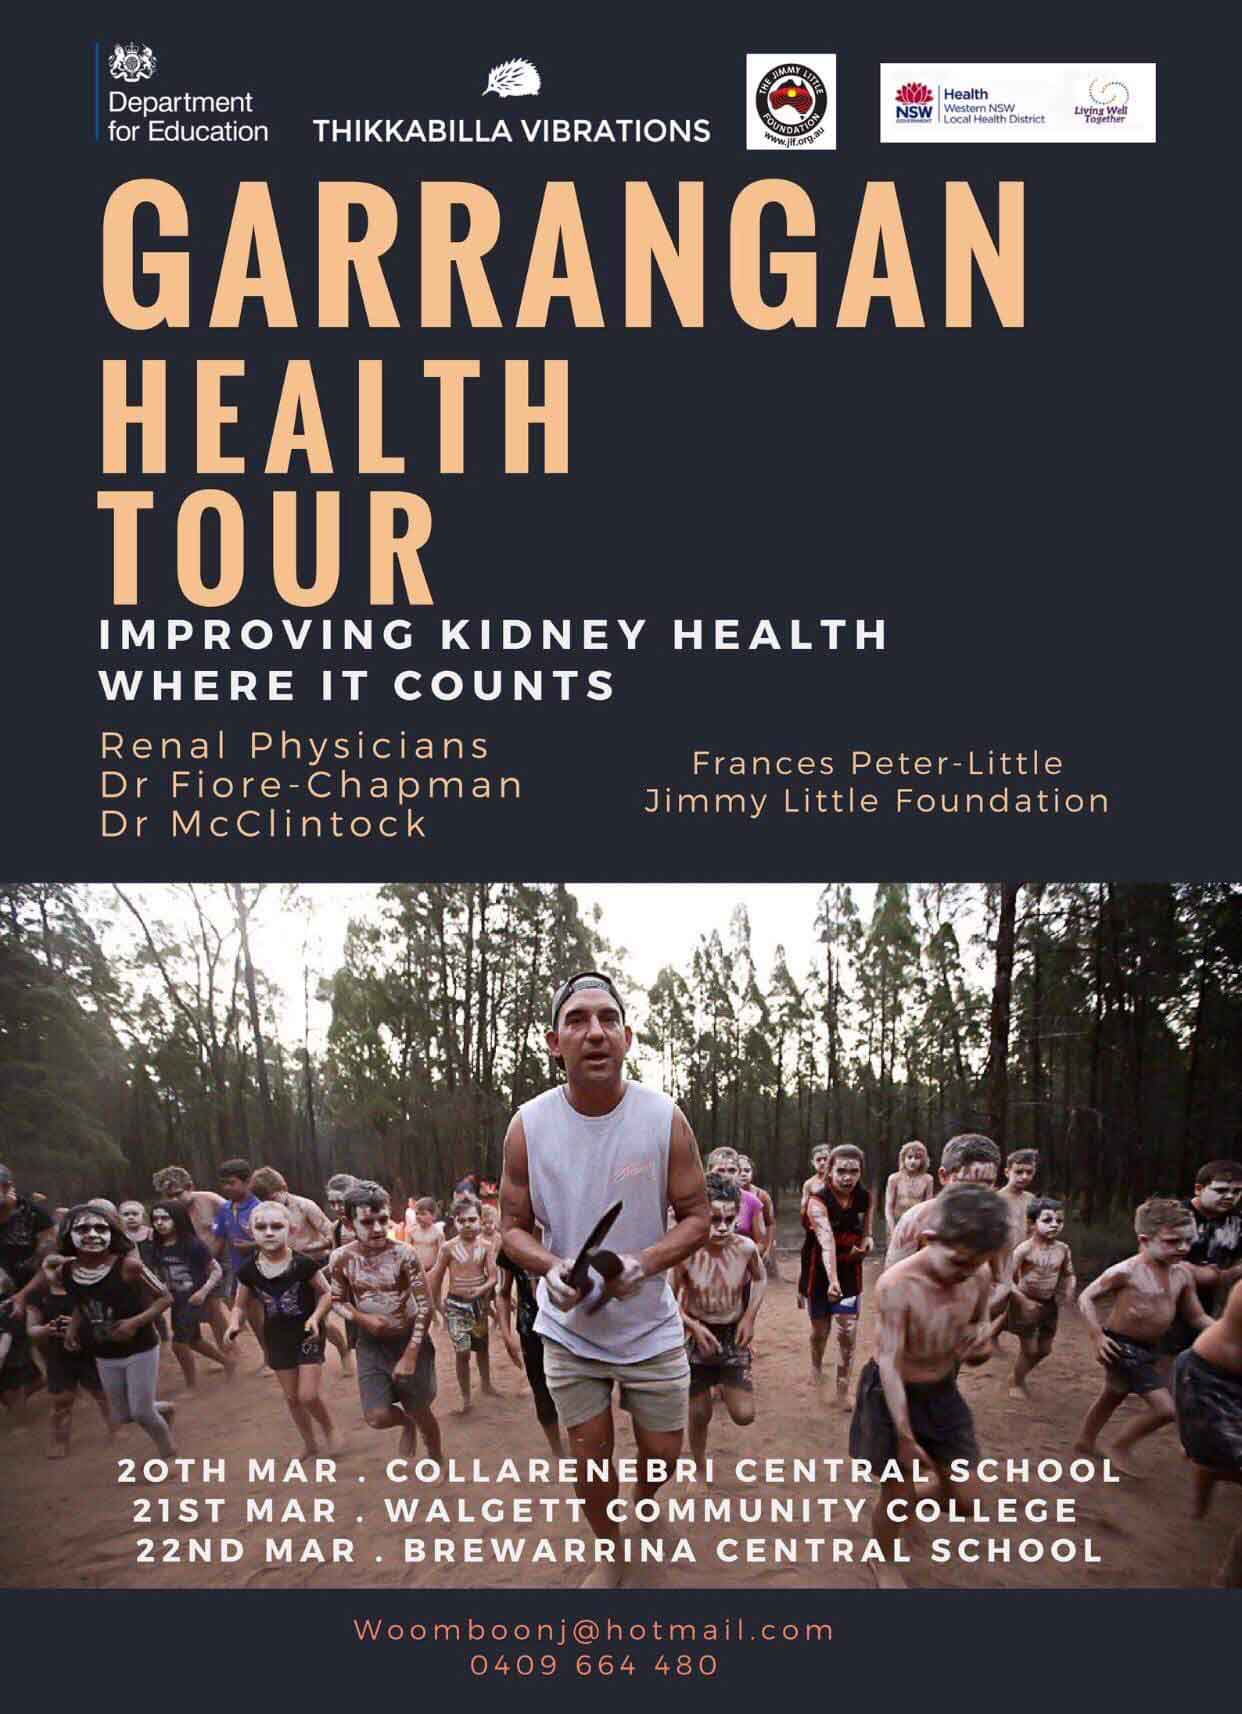 A poster promoting the Garrangan Health tour, with an Aboriginal man making music with two boomerangs and with Aboriginal kids behind him dancing